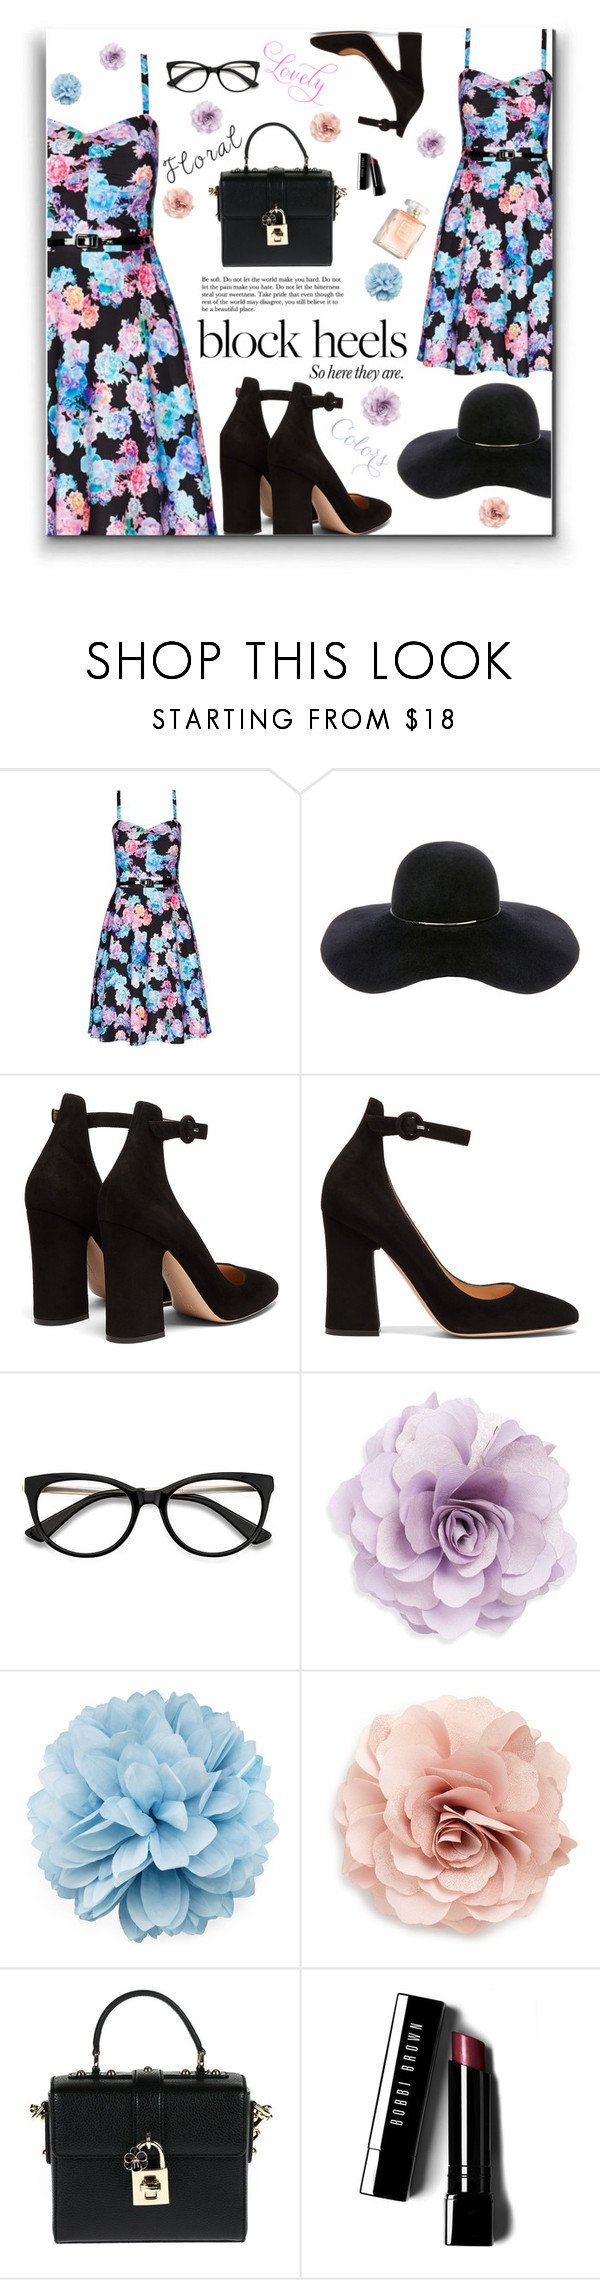 """block heels & floral"" by nineseventyseven ❤ liked on Polyvore featuring City Chic, Eugenia Kim, Gianvito Rossi, Cara, Gucci, Dolce&Gabbana, Bobbi Brown Cosmetics, floraldress and blockheels"